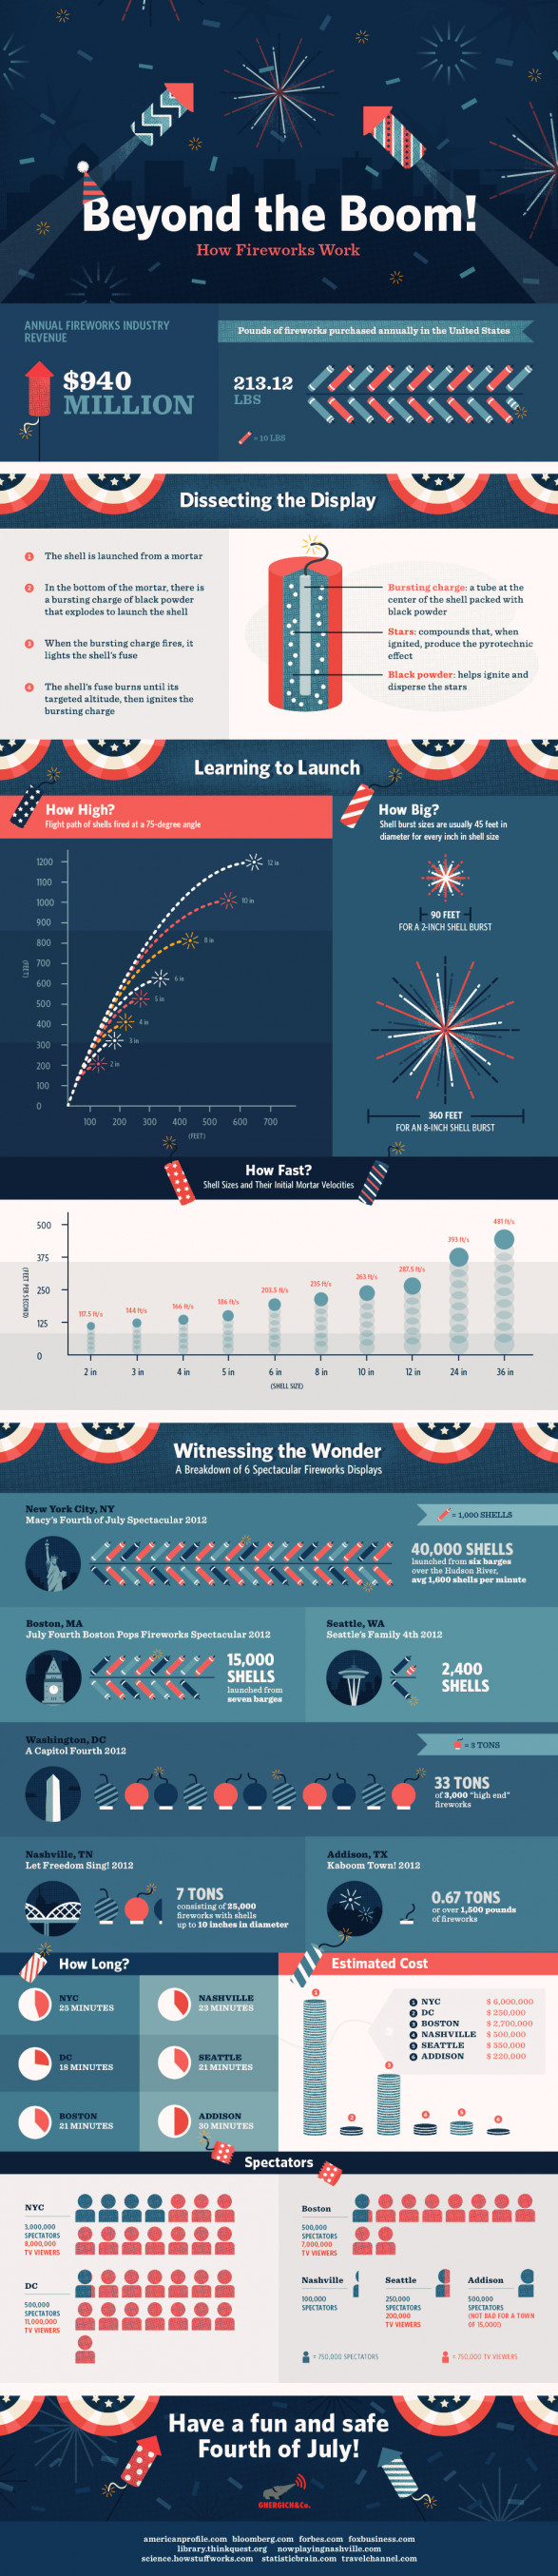 Beyond the BOOM! How Fireworks Work